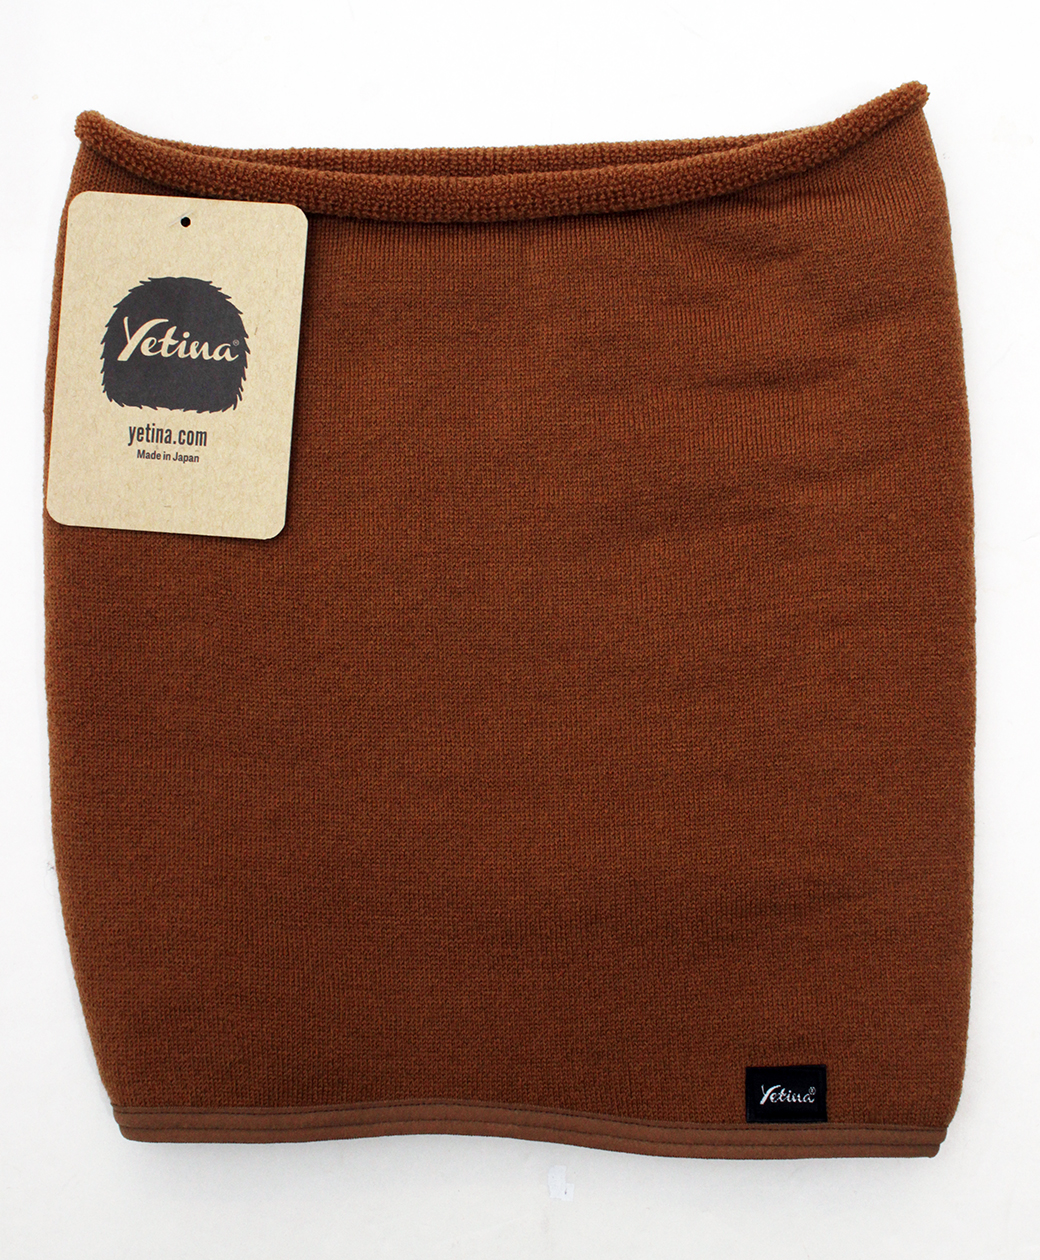 yetina Antarctica merino neck gaiter(orange brown)